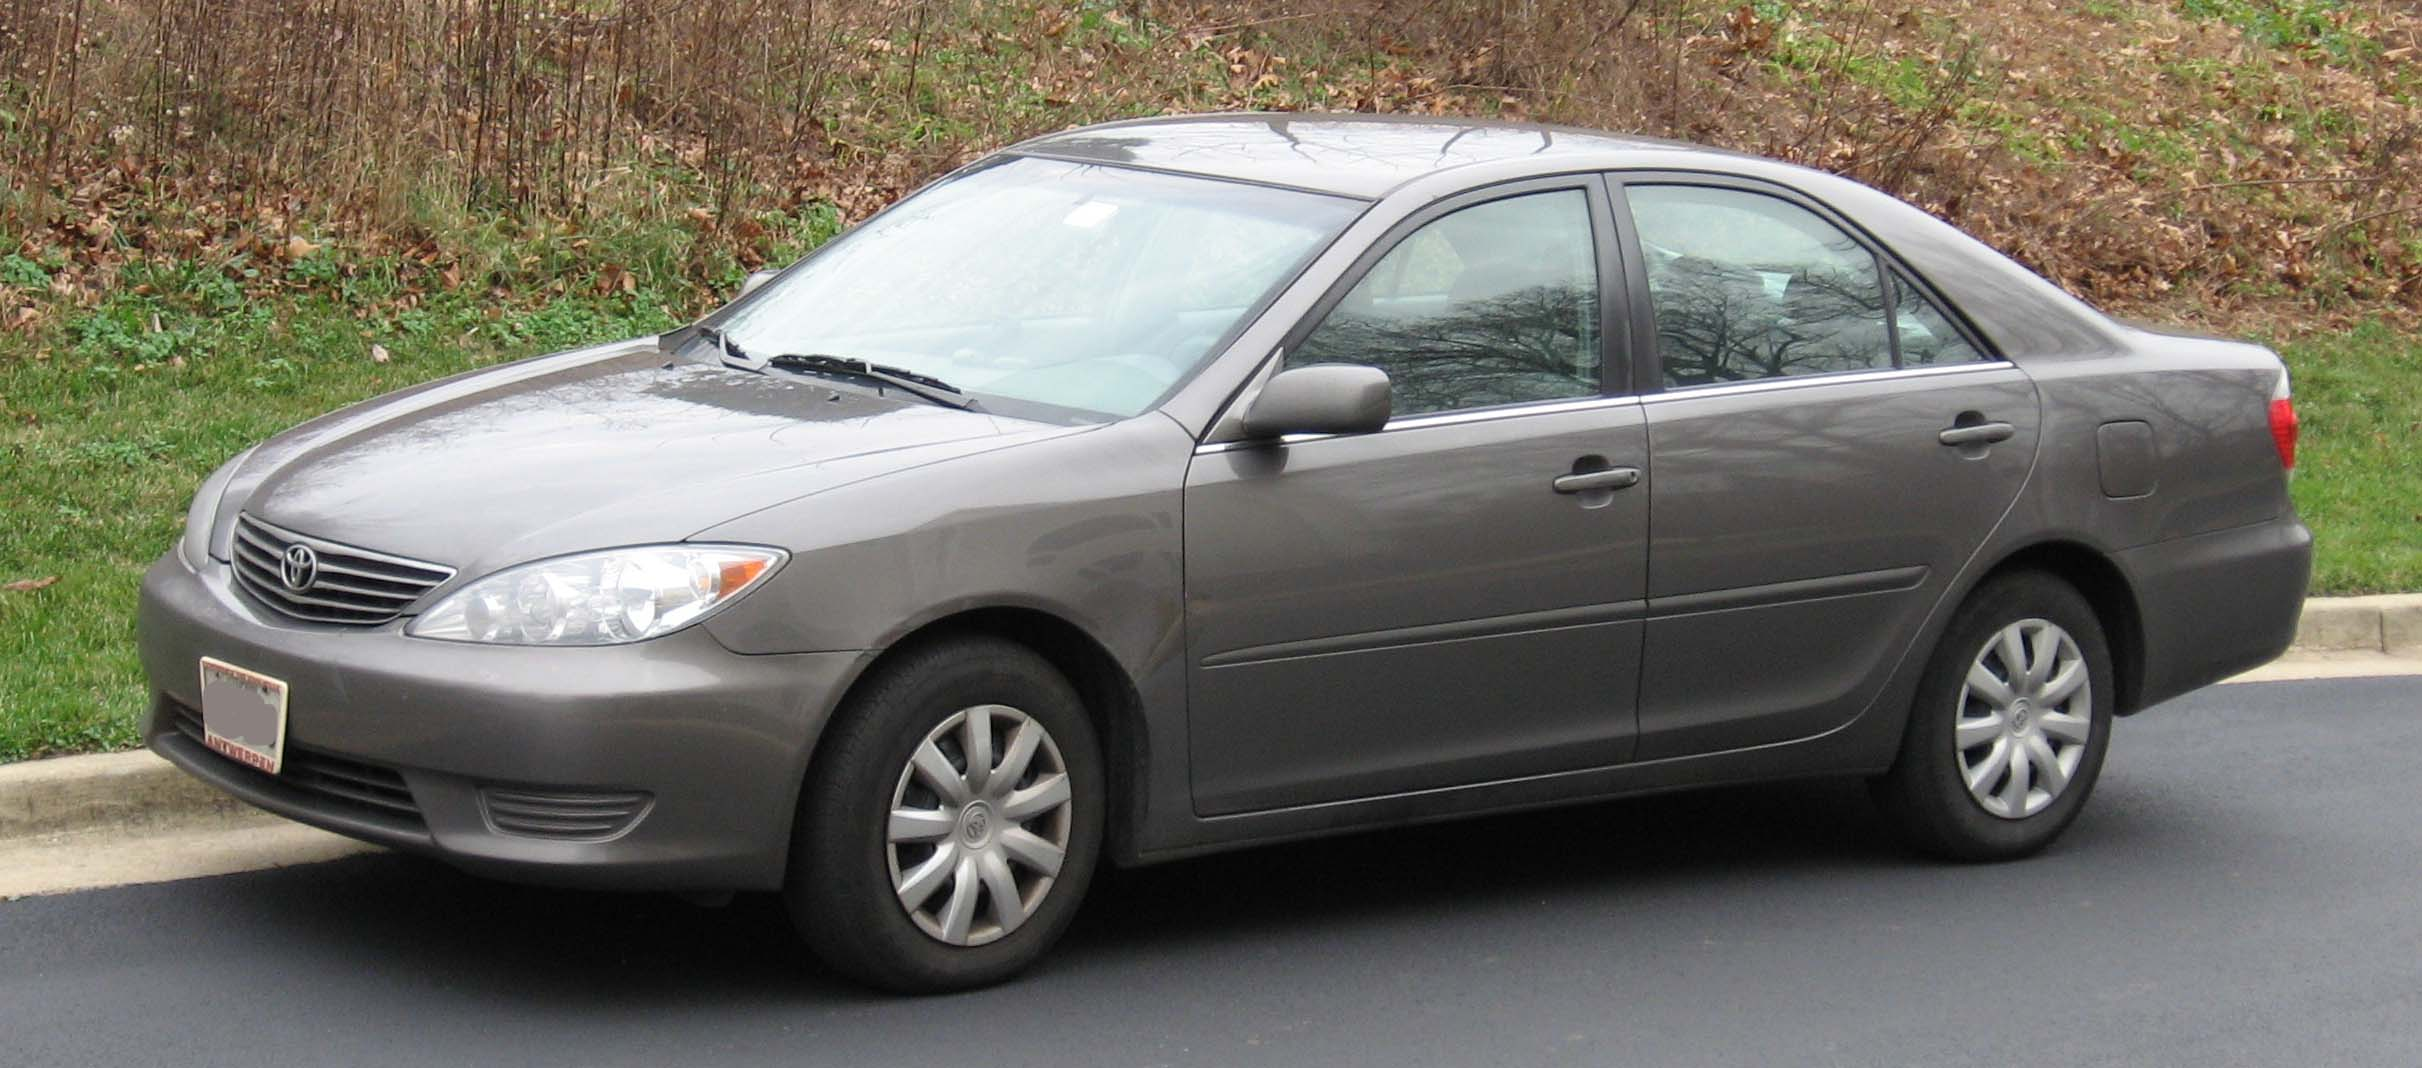 2005 Toyota Camry Image 14